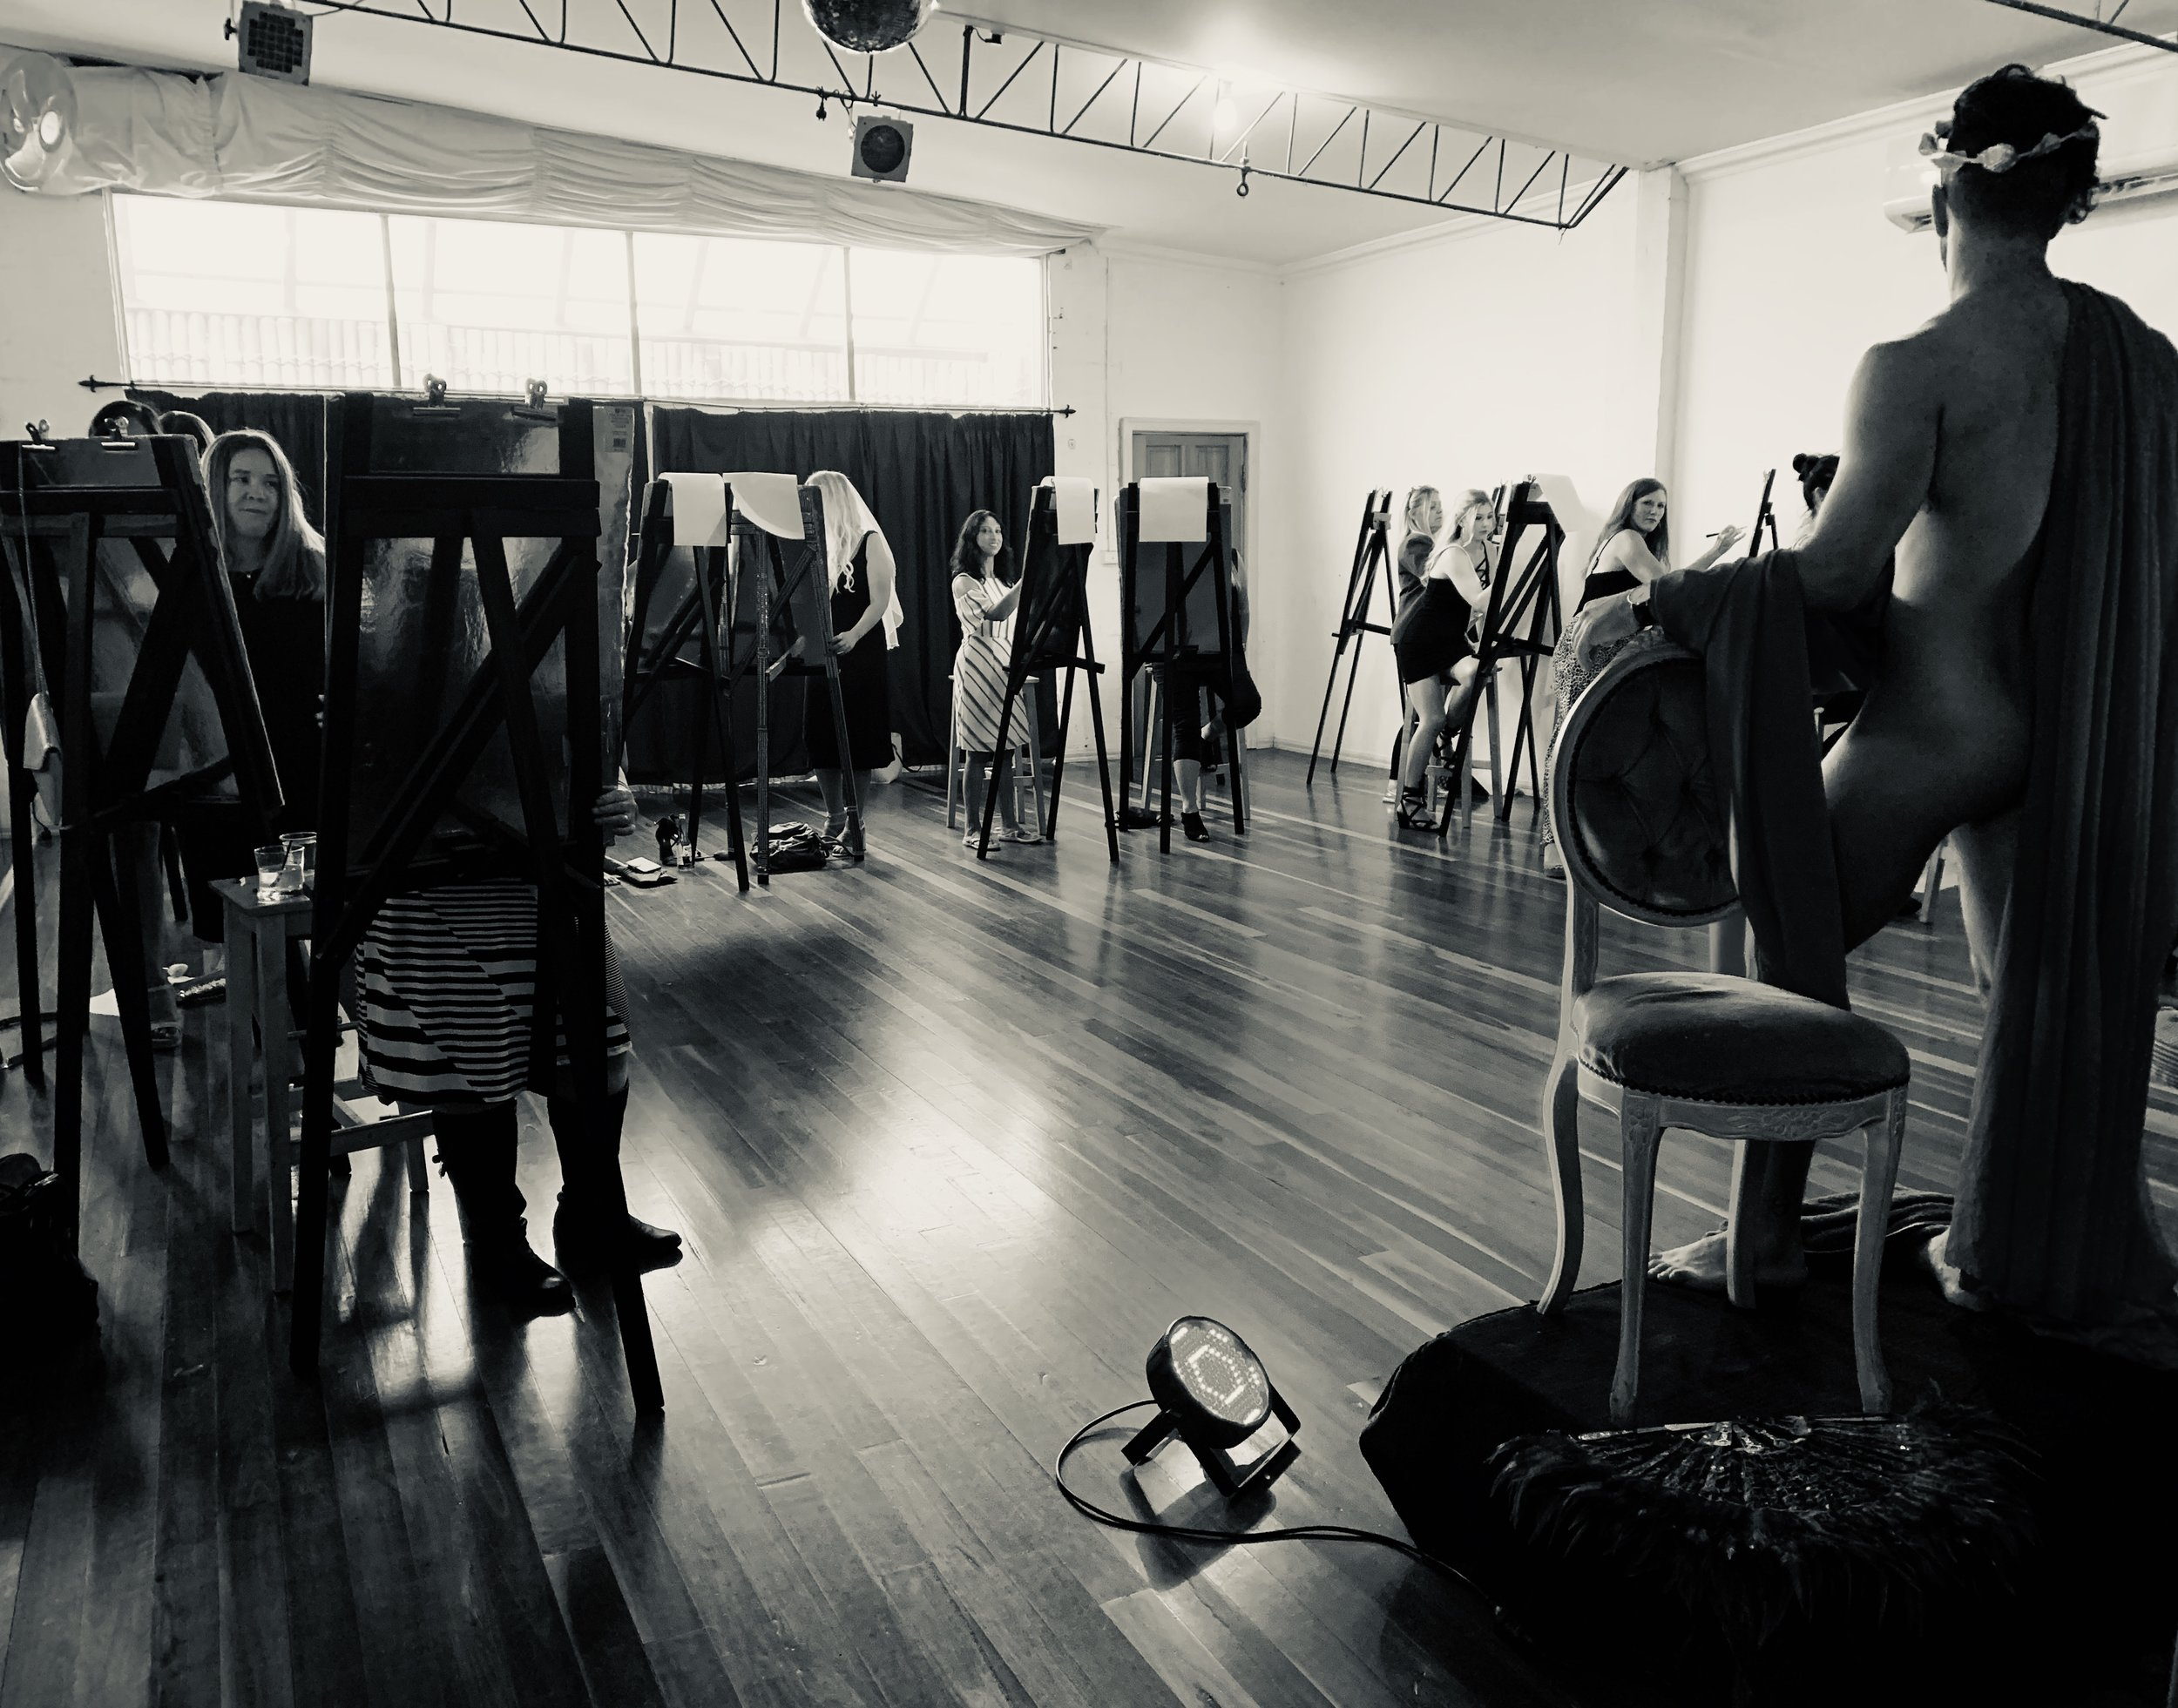 Life drawing class in session